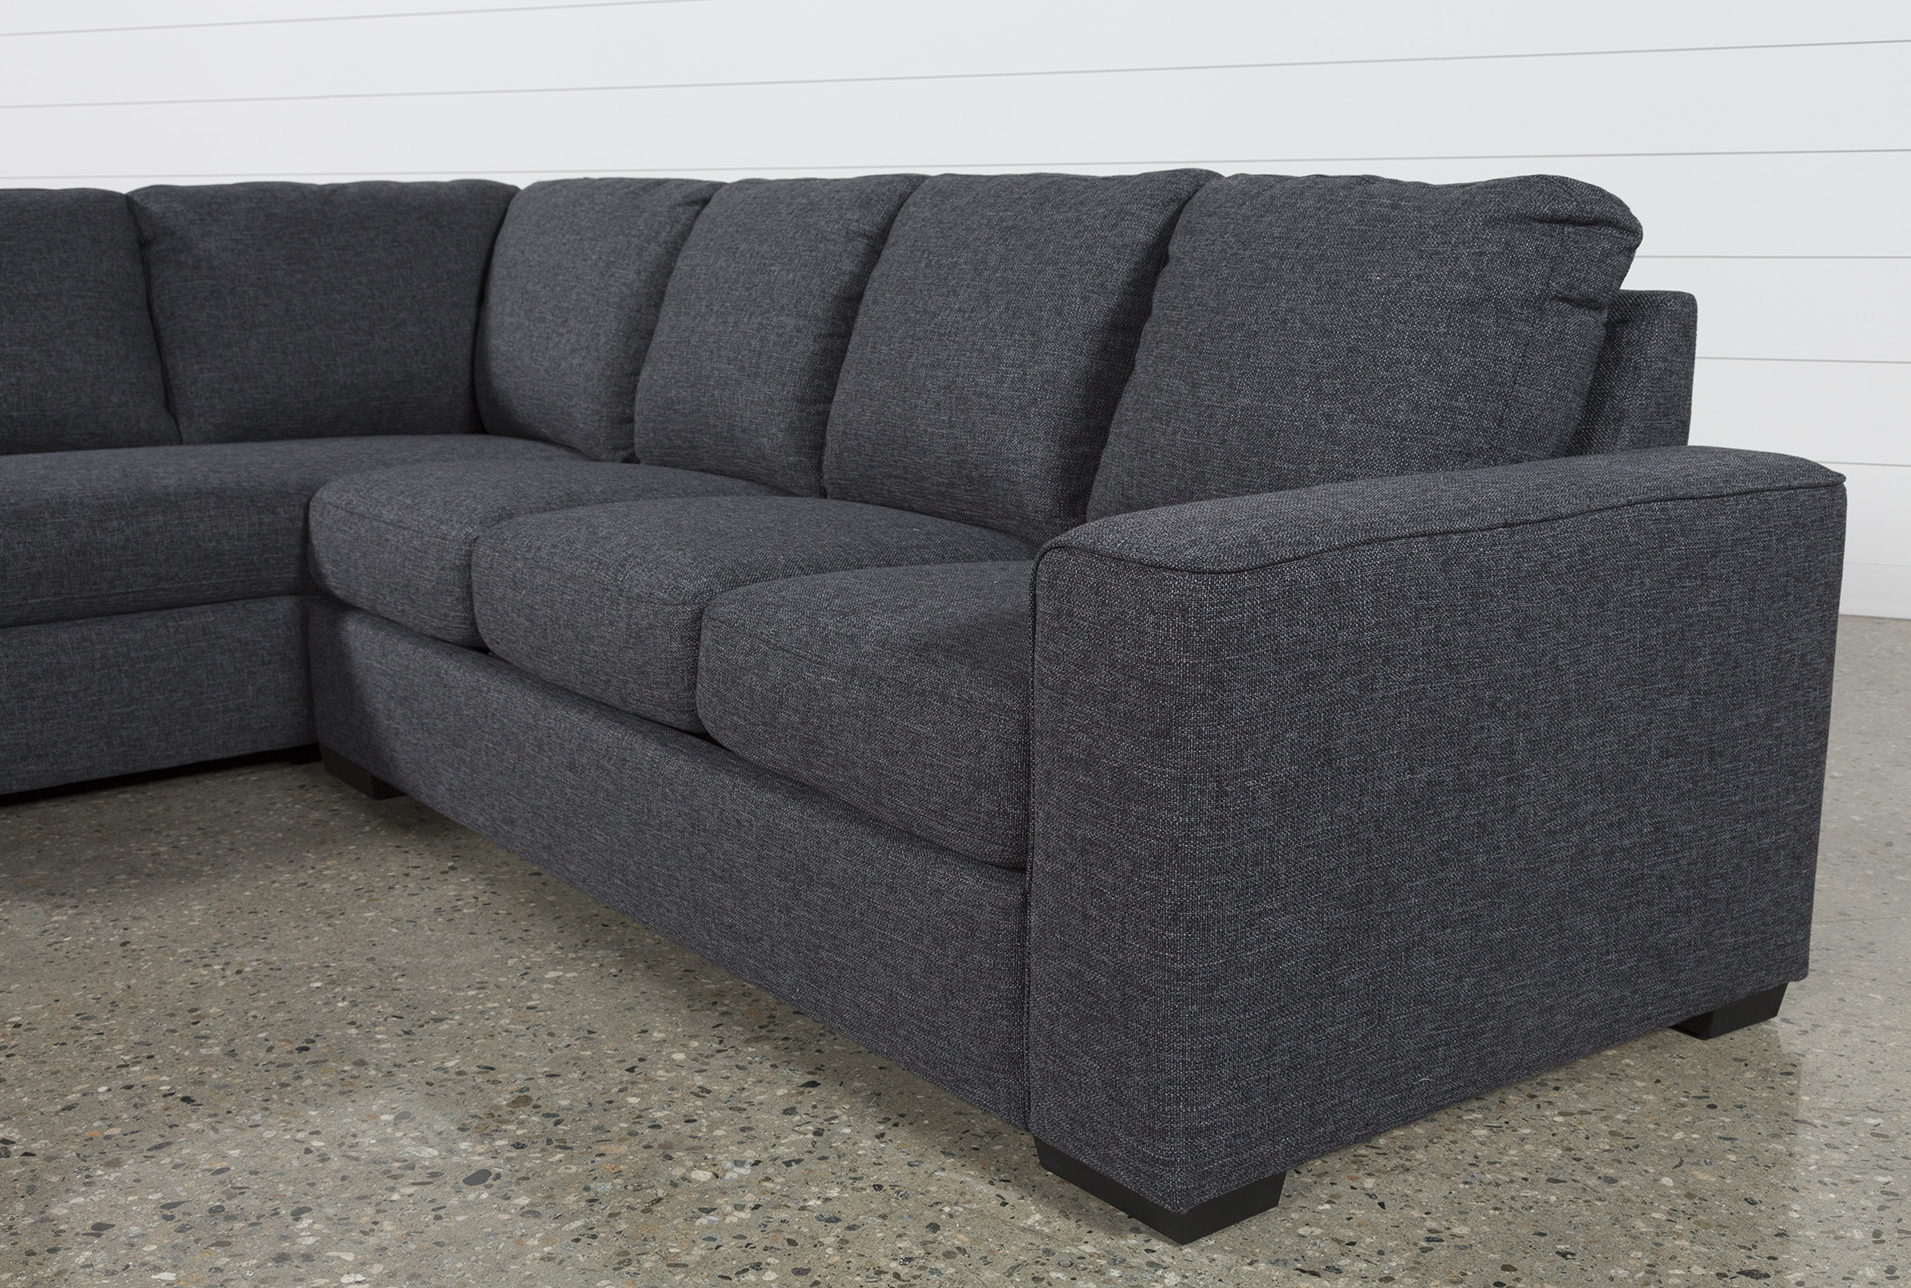 Lucy Dark Grey 2 Piece Sectional W/raf Chaise (View 7 of 20)